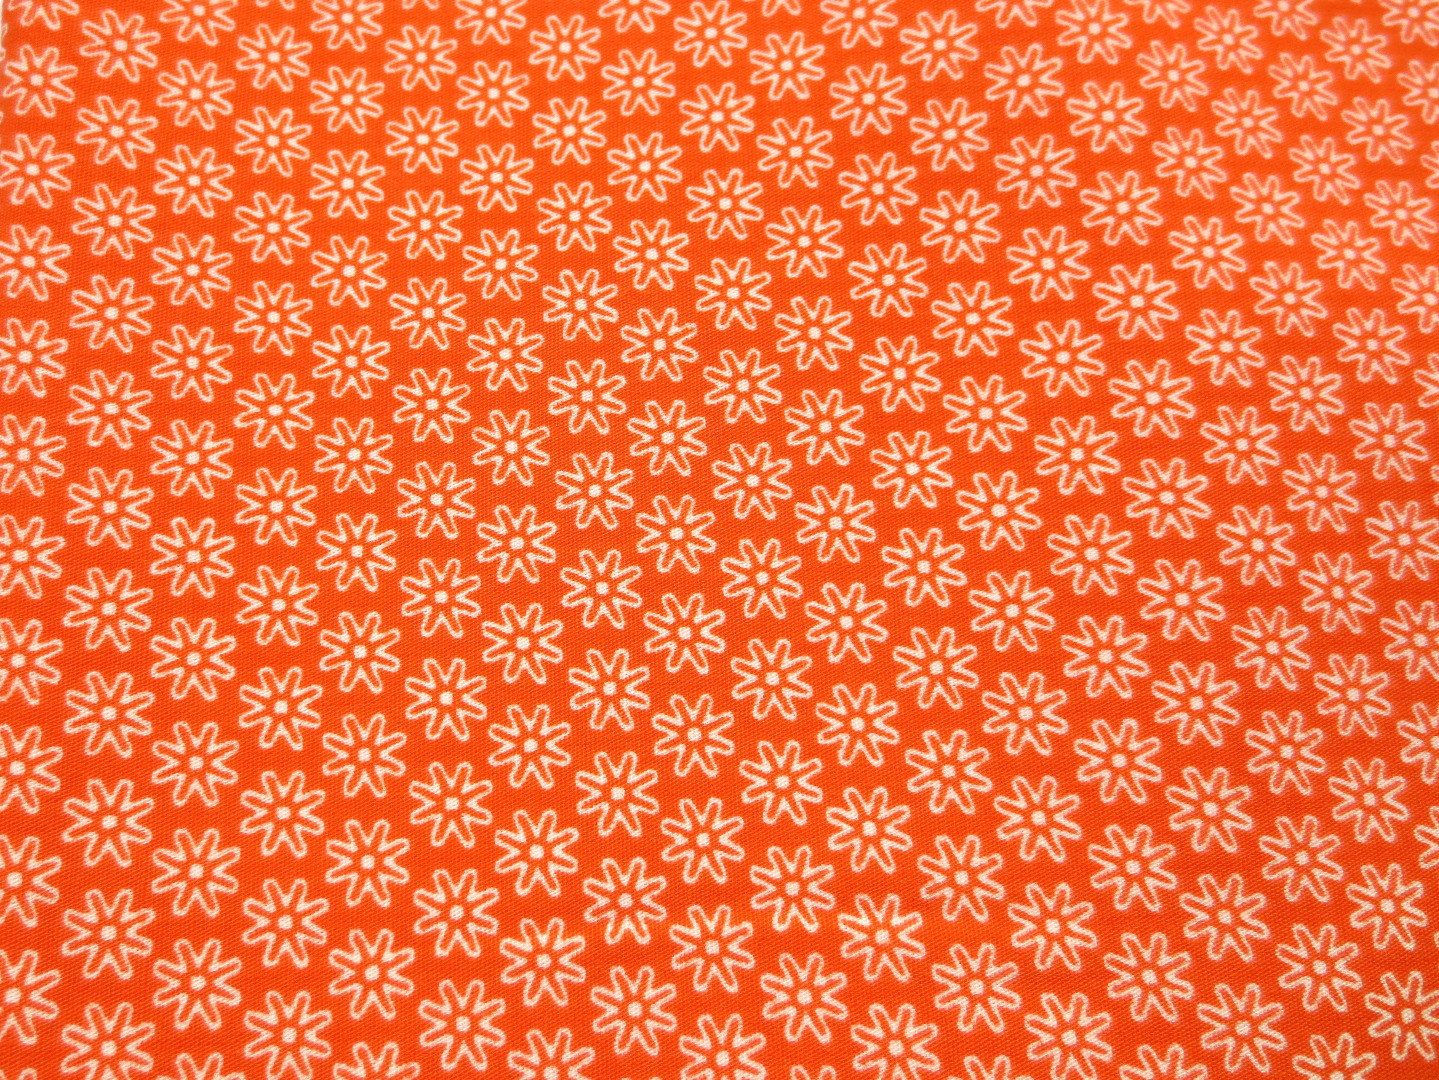 Stoff Blumen orange - 100 Baumwolle